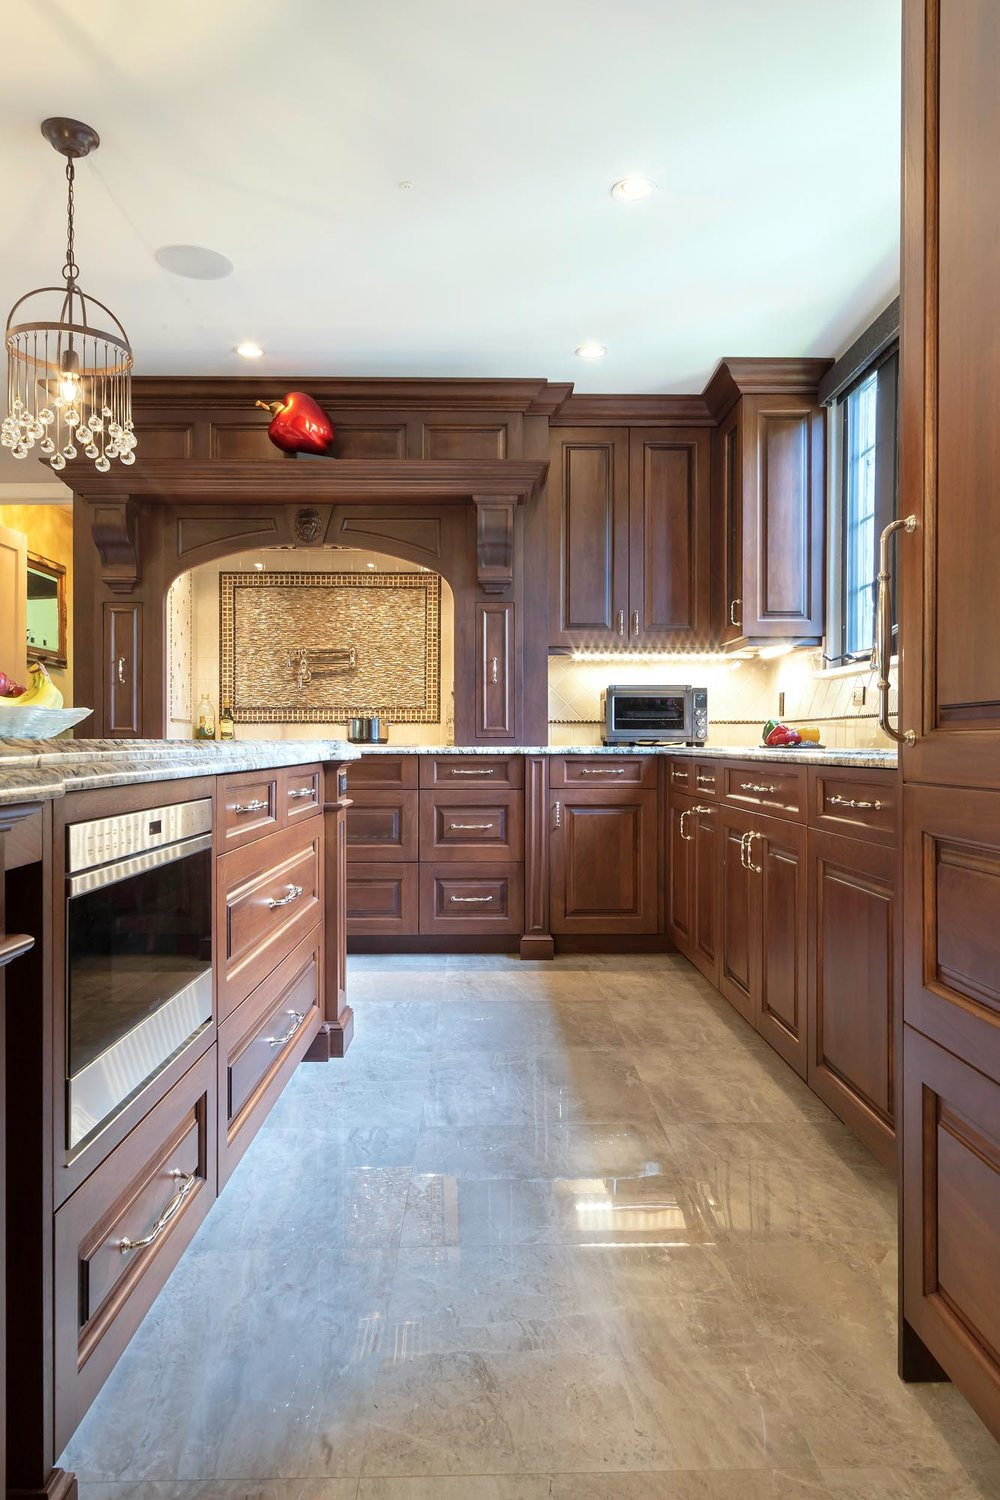 Traditional kitchen with rich dark walnut cabinetry with polished porcelain floor